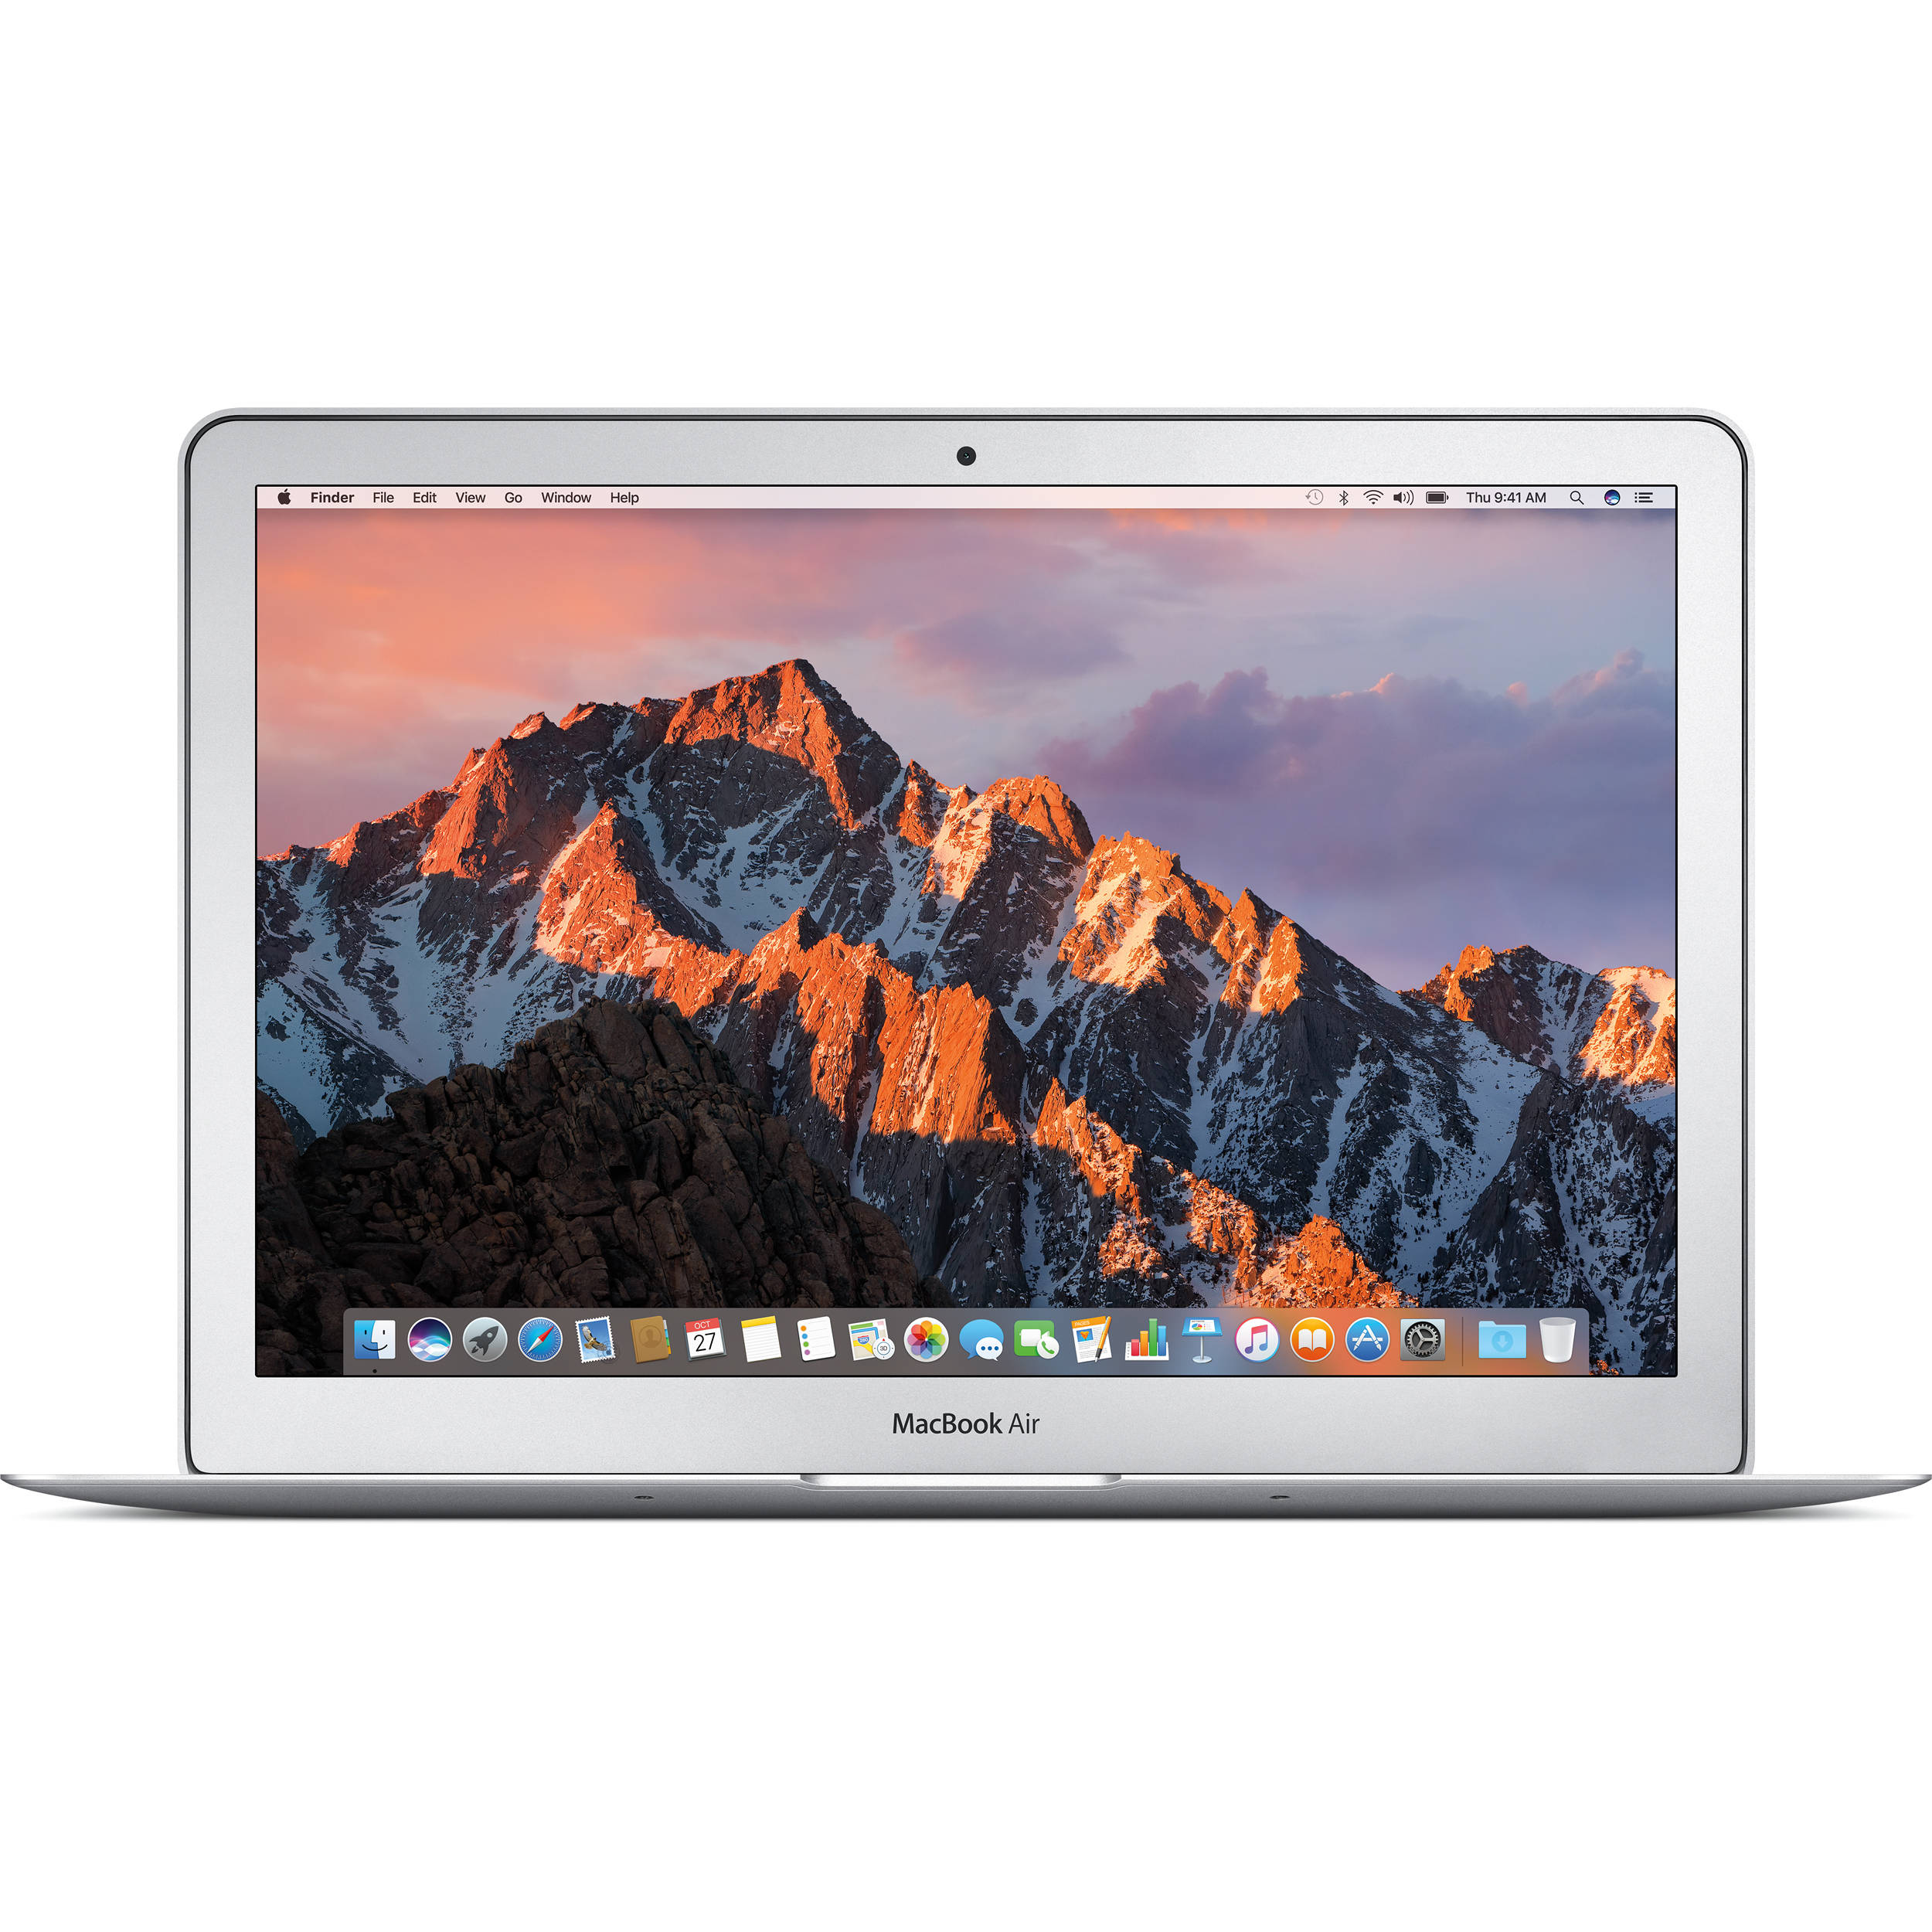 MacBook, air ( 13 -inch, 2017 ) - Technical Specifications